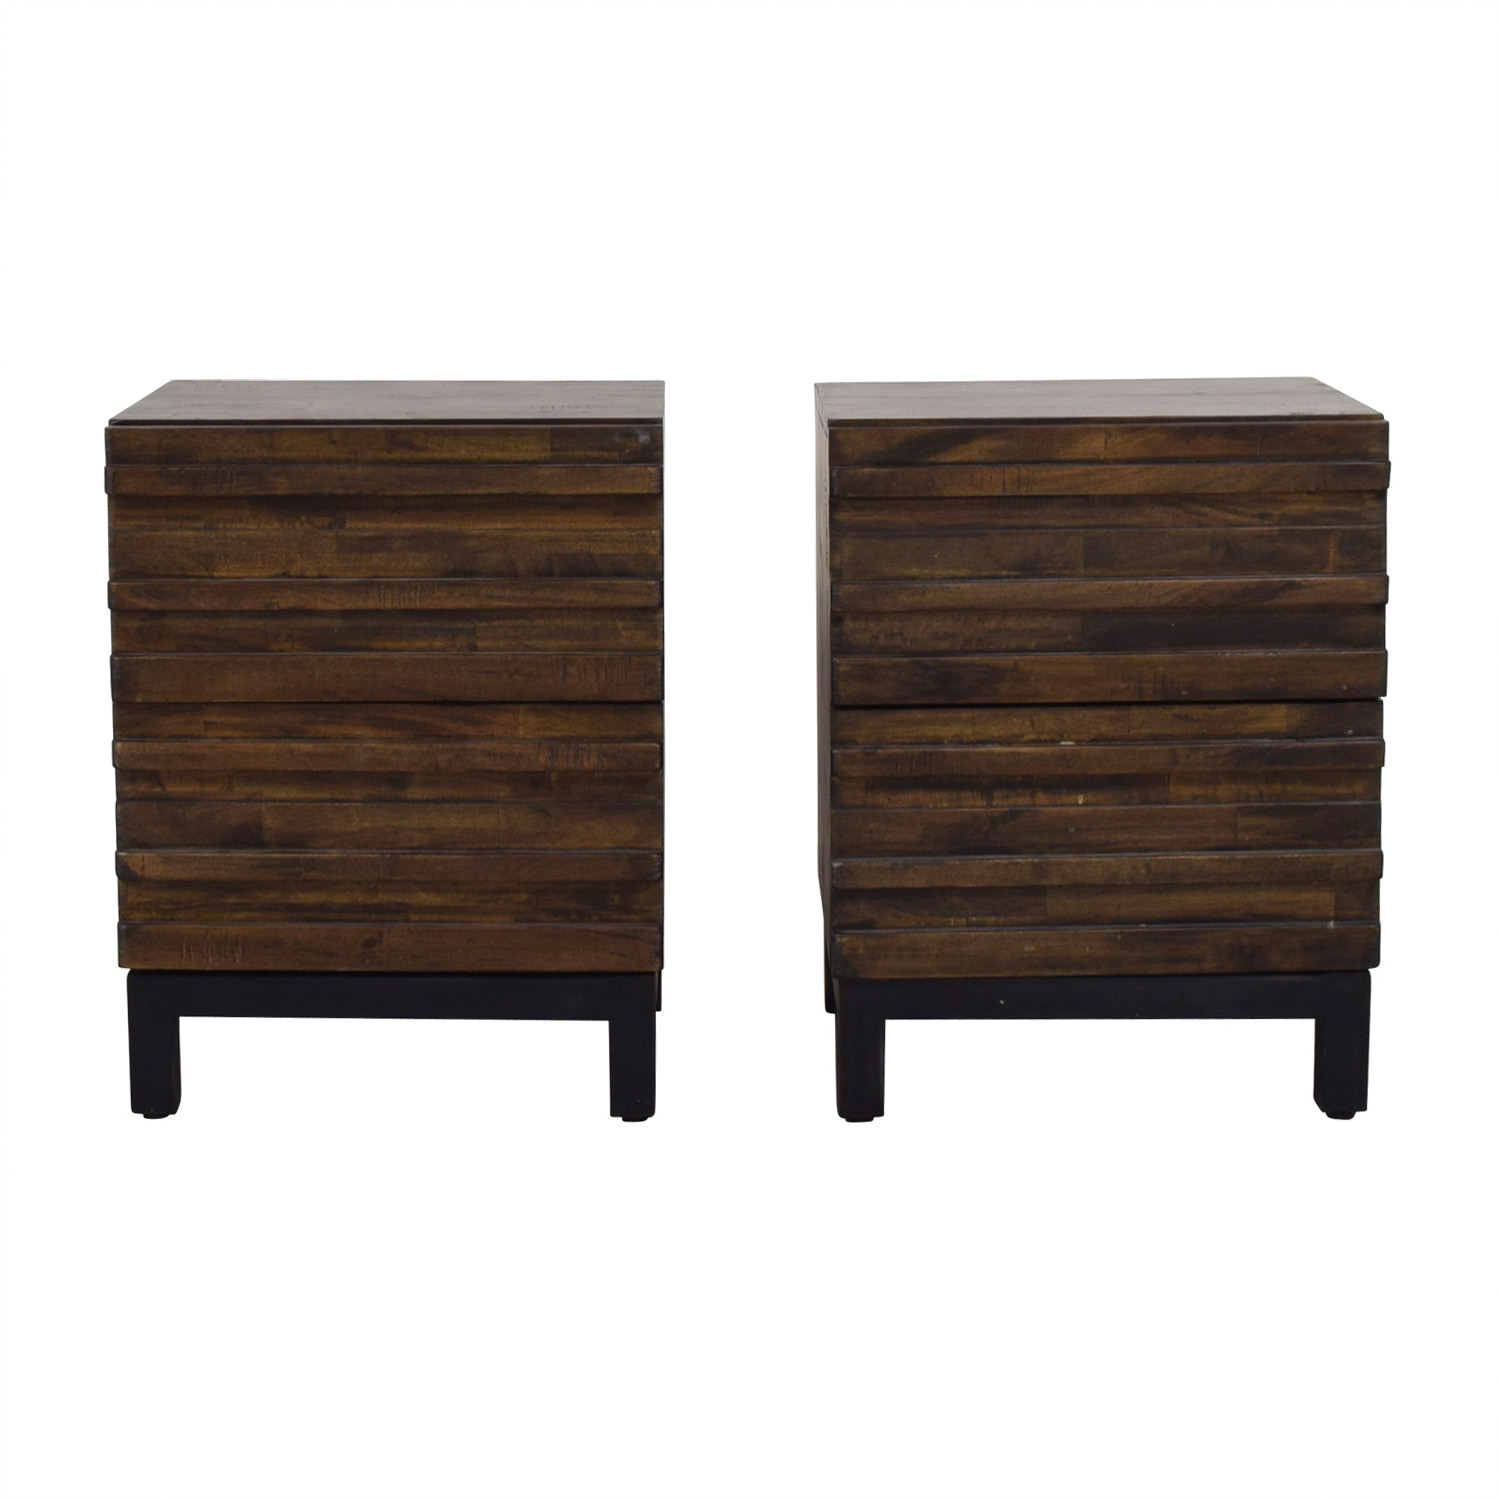 Raymour & Flanigan Nara Sahara Two-Drawer End Tables / Tables